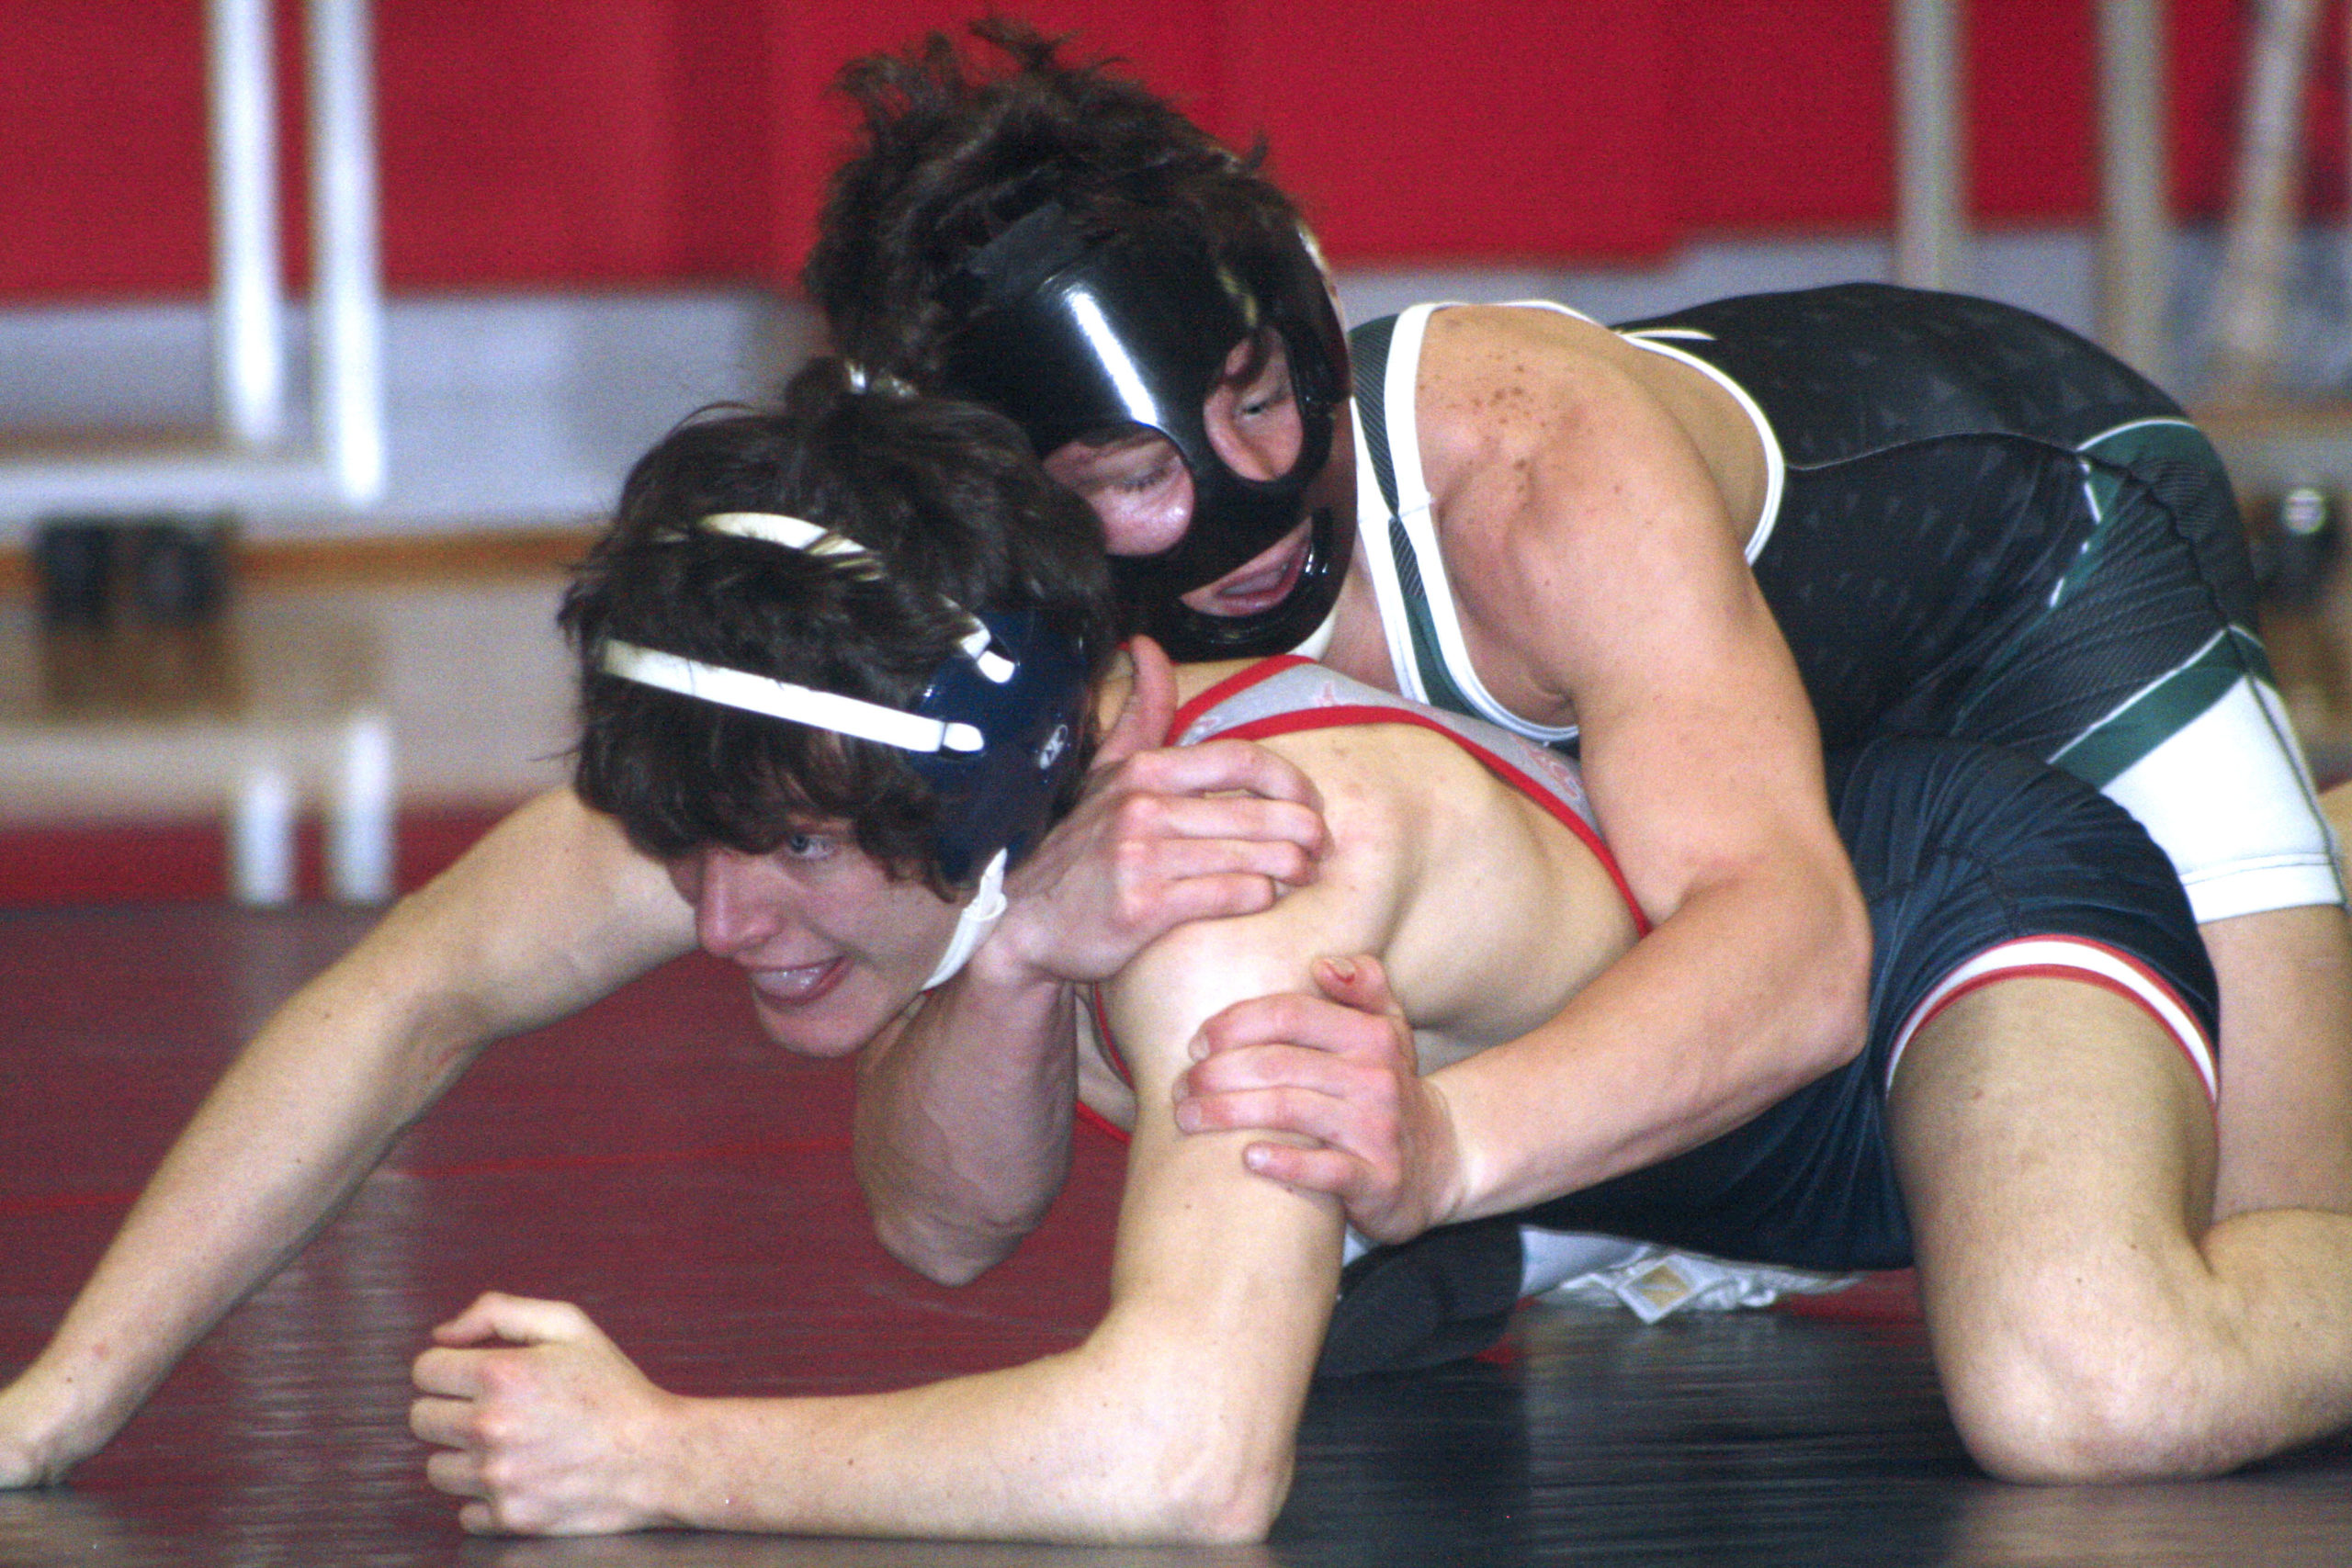 Luke Citarelli started the match off with an 11-3 win.  CAILIN RILEY